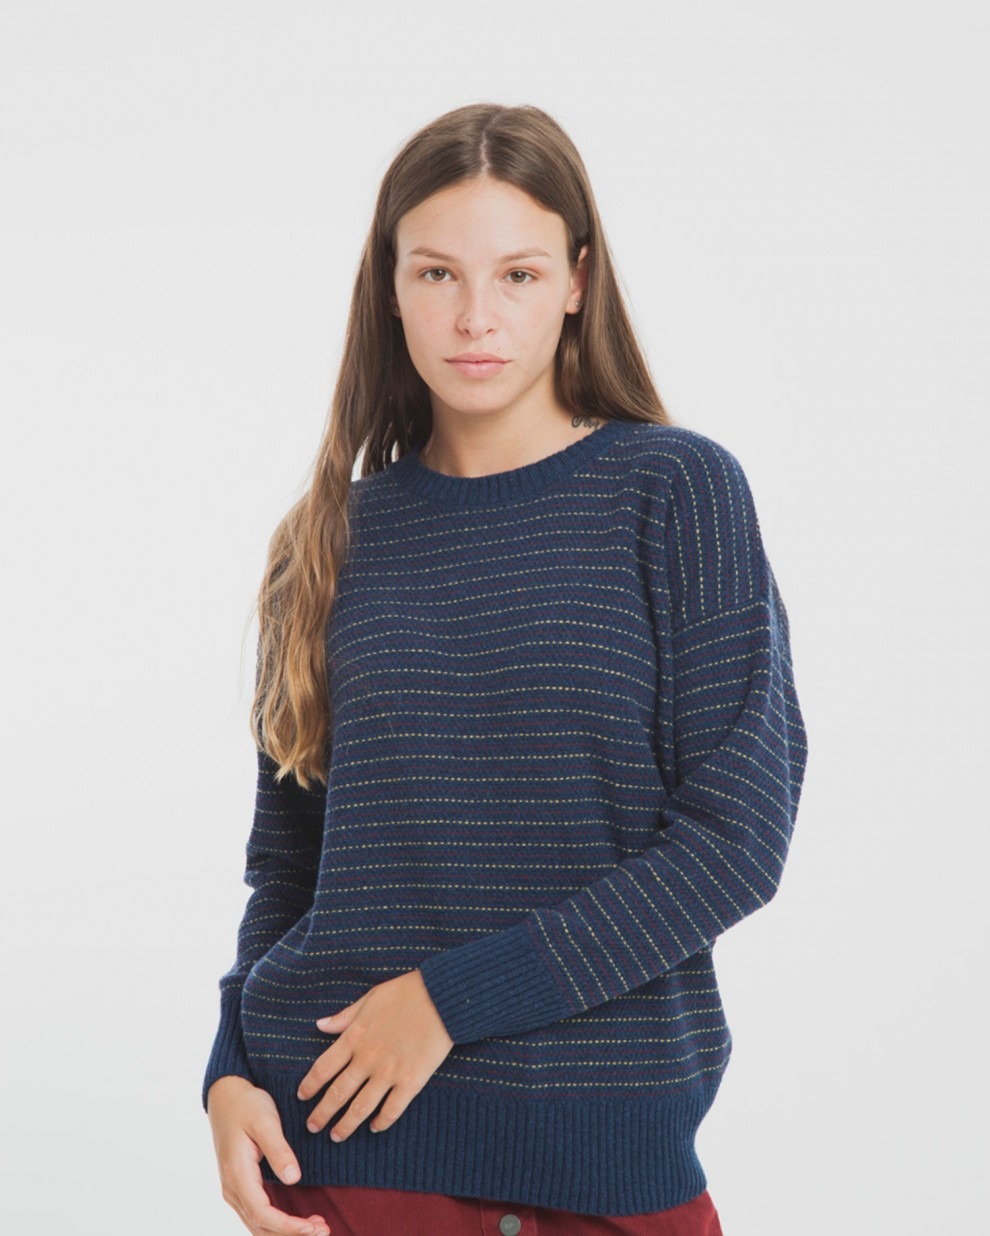 Blue Lines Knit Sweater